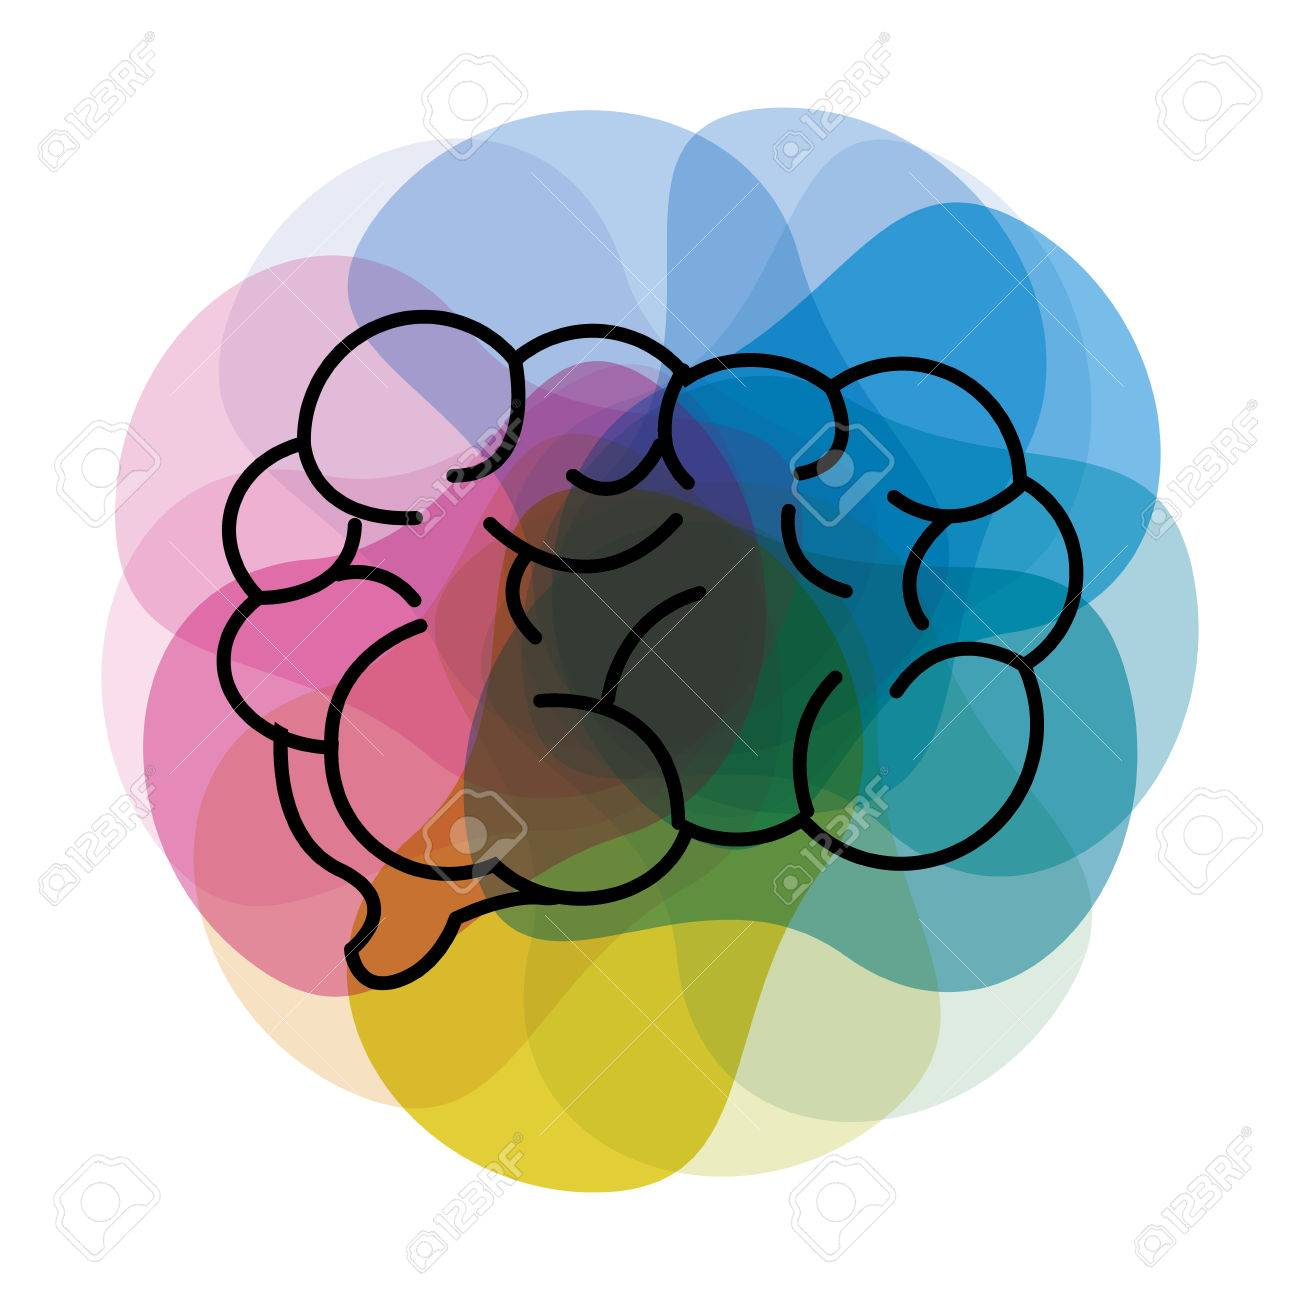 Watercolor Mental Health Brain Art Icon Royalty Free Cliparts Vectors And Stock Illustration Image 77229891